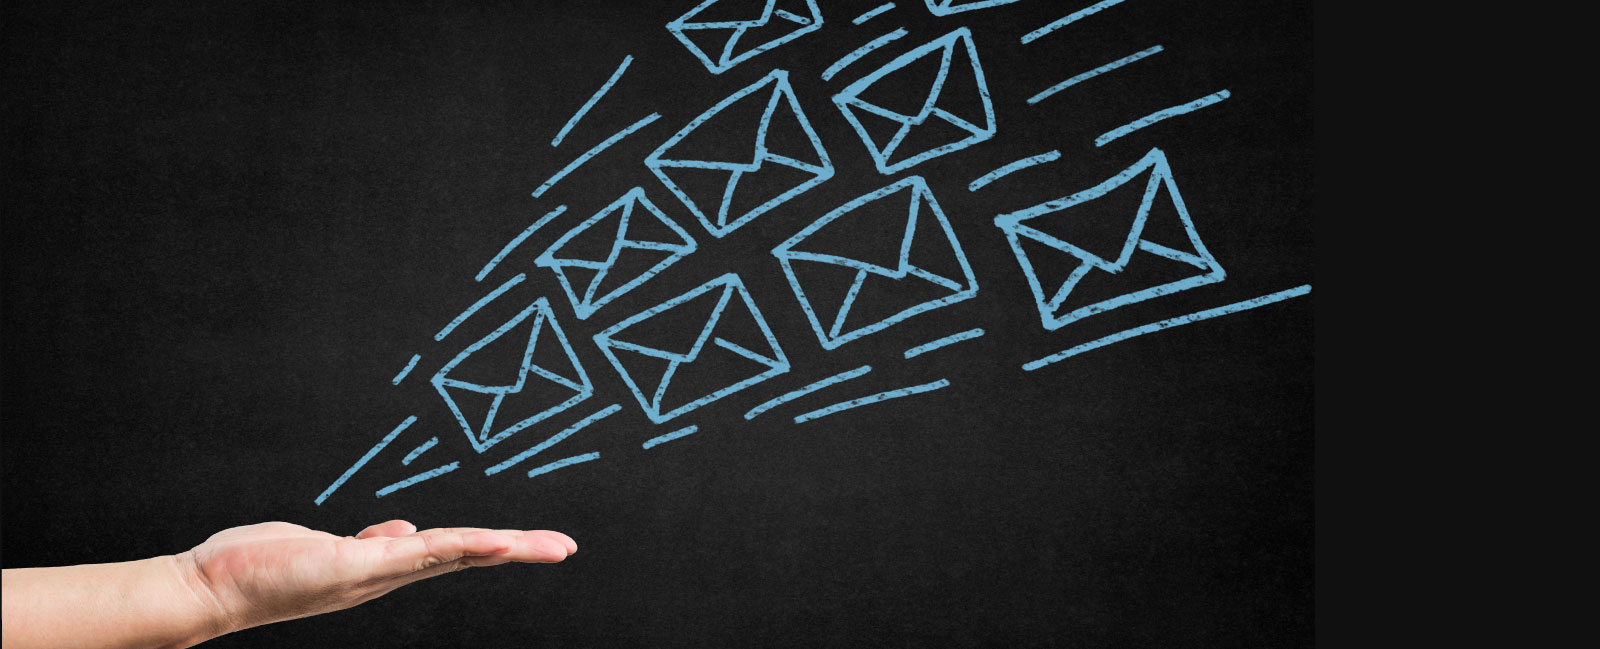 Acquisire nuovi clienti con le e-mail: Come fare profitti con il Direct Response Marketing